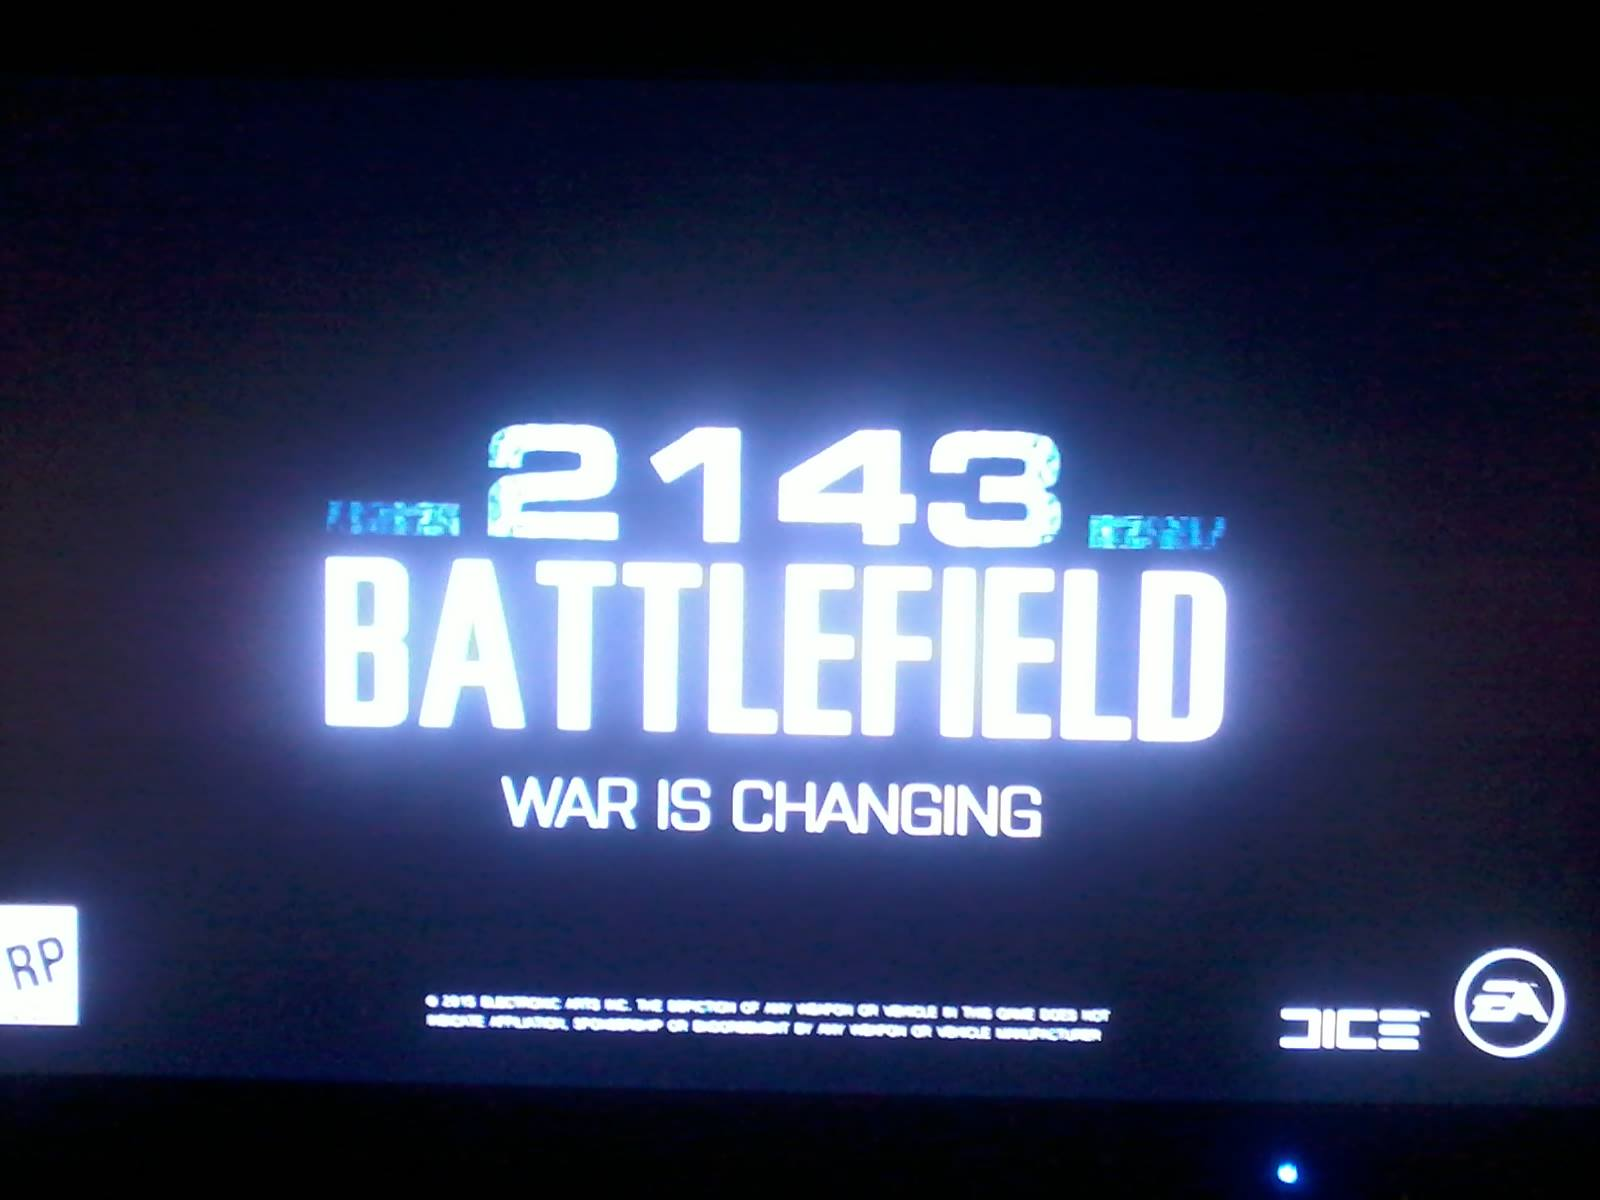 Battlefield 2143 has a new slogan